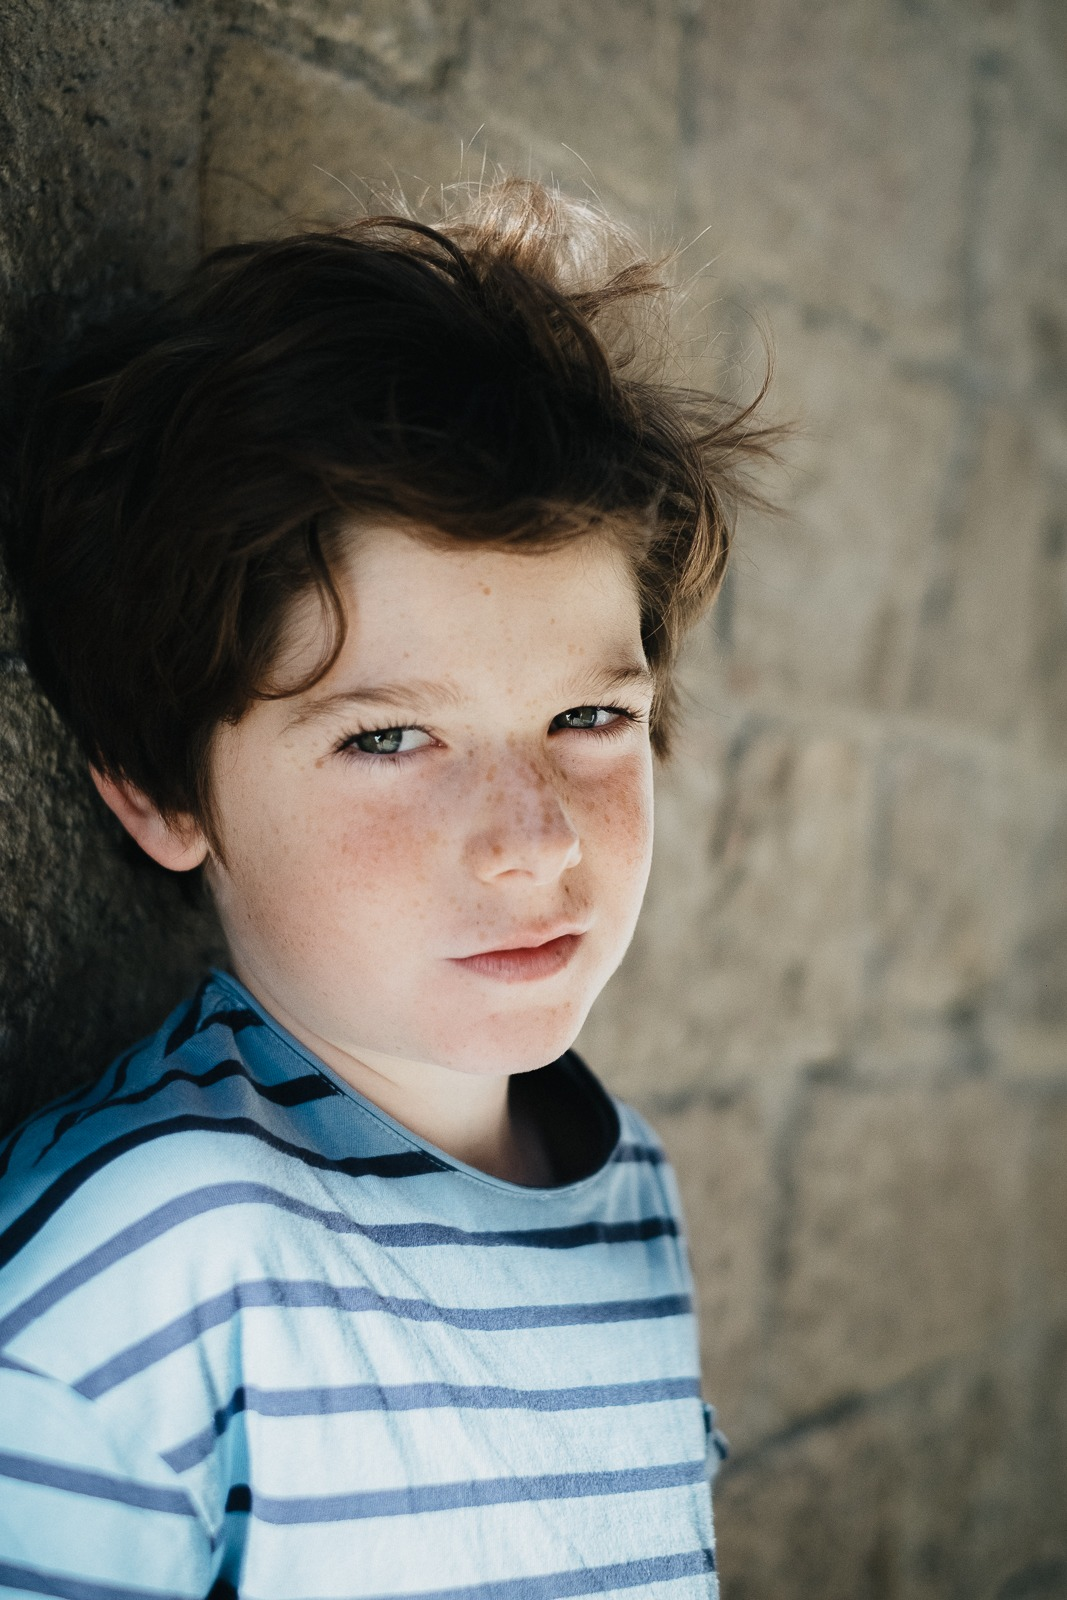 Young boy by a brick wall in Barcelona, solo portrait picture by Pauline Mattia